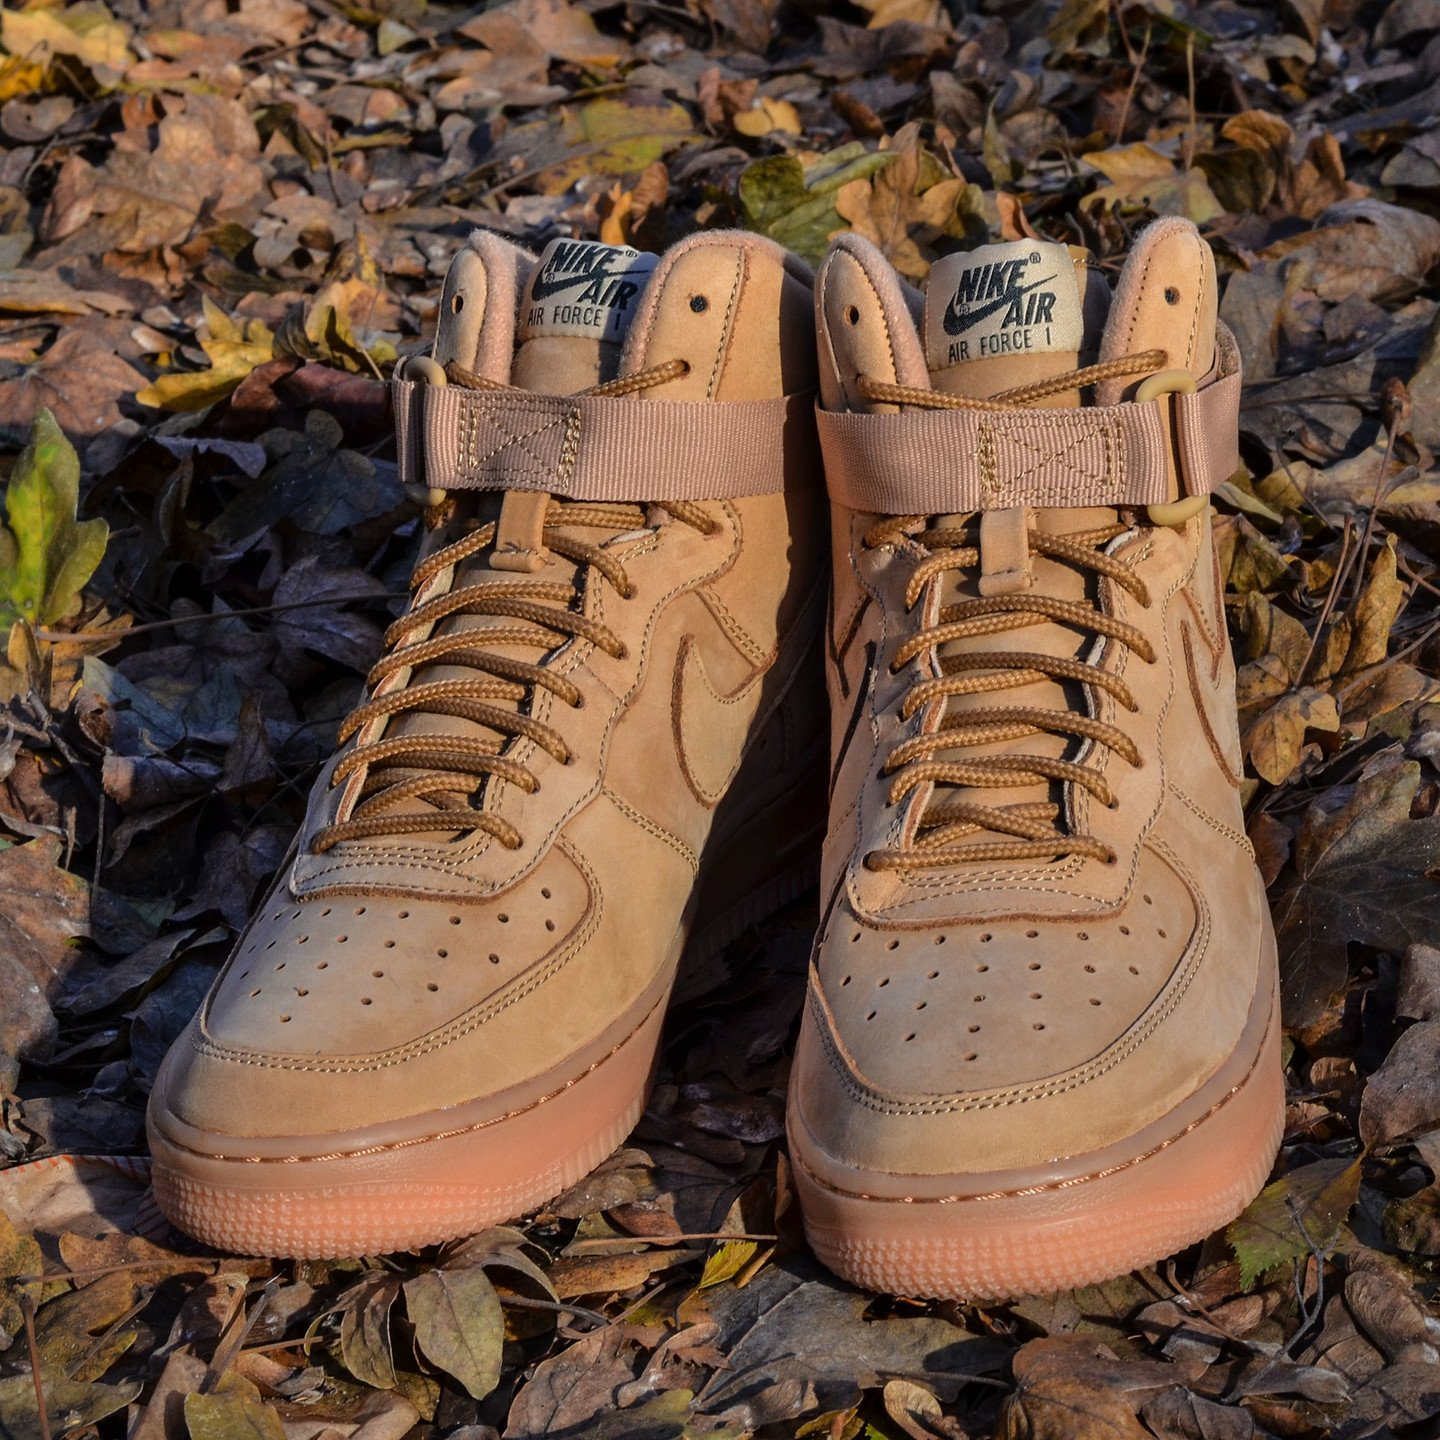 Nike Air Force 1 High '07 LV8 Flax / Gum 882096-200